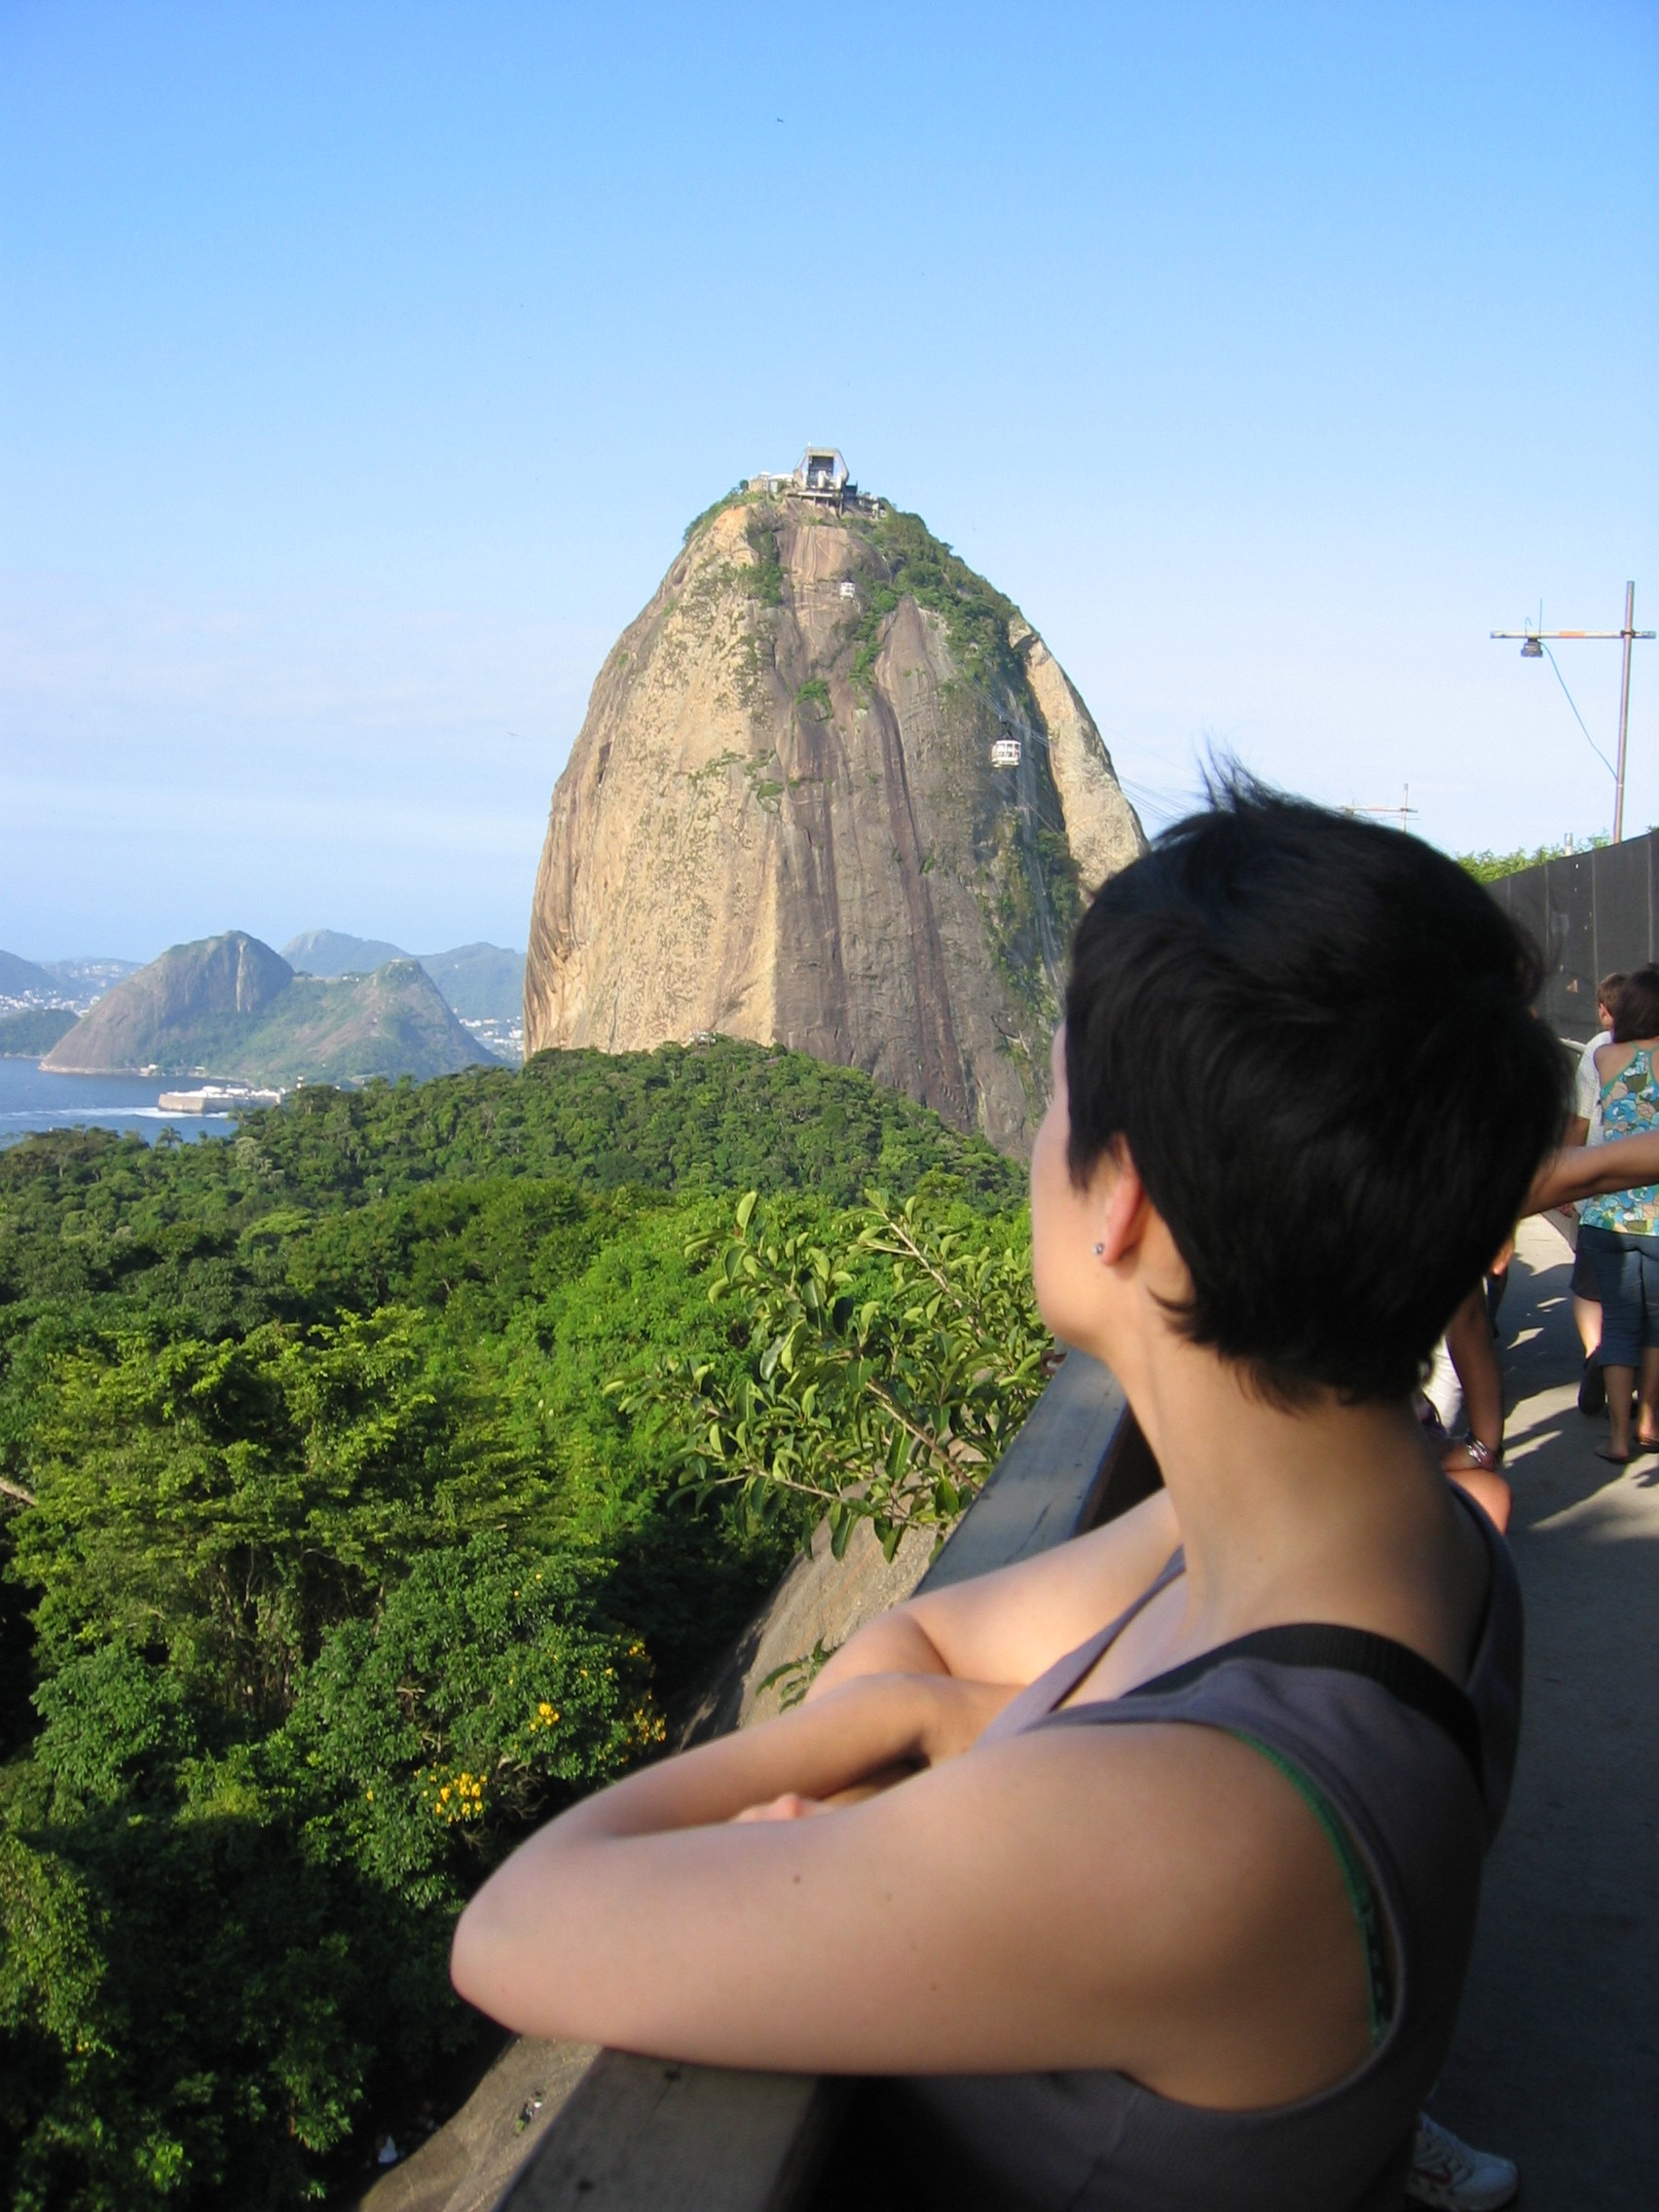 Sugarloaf Mountain, in Rio de Janeiro. Impossible climb? It's just a matter of perspective.